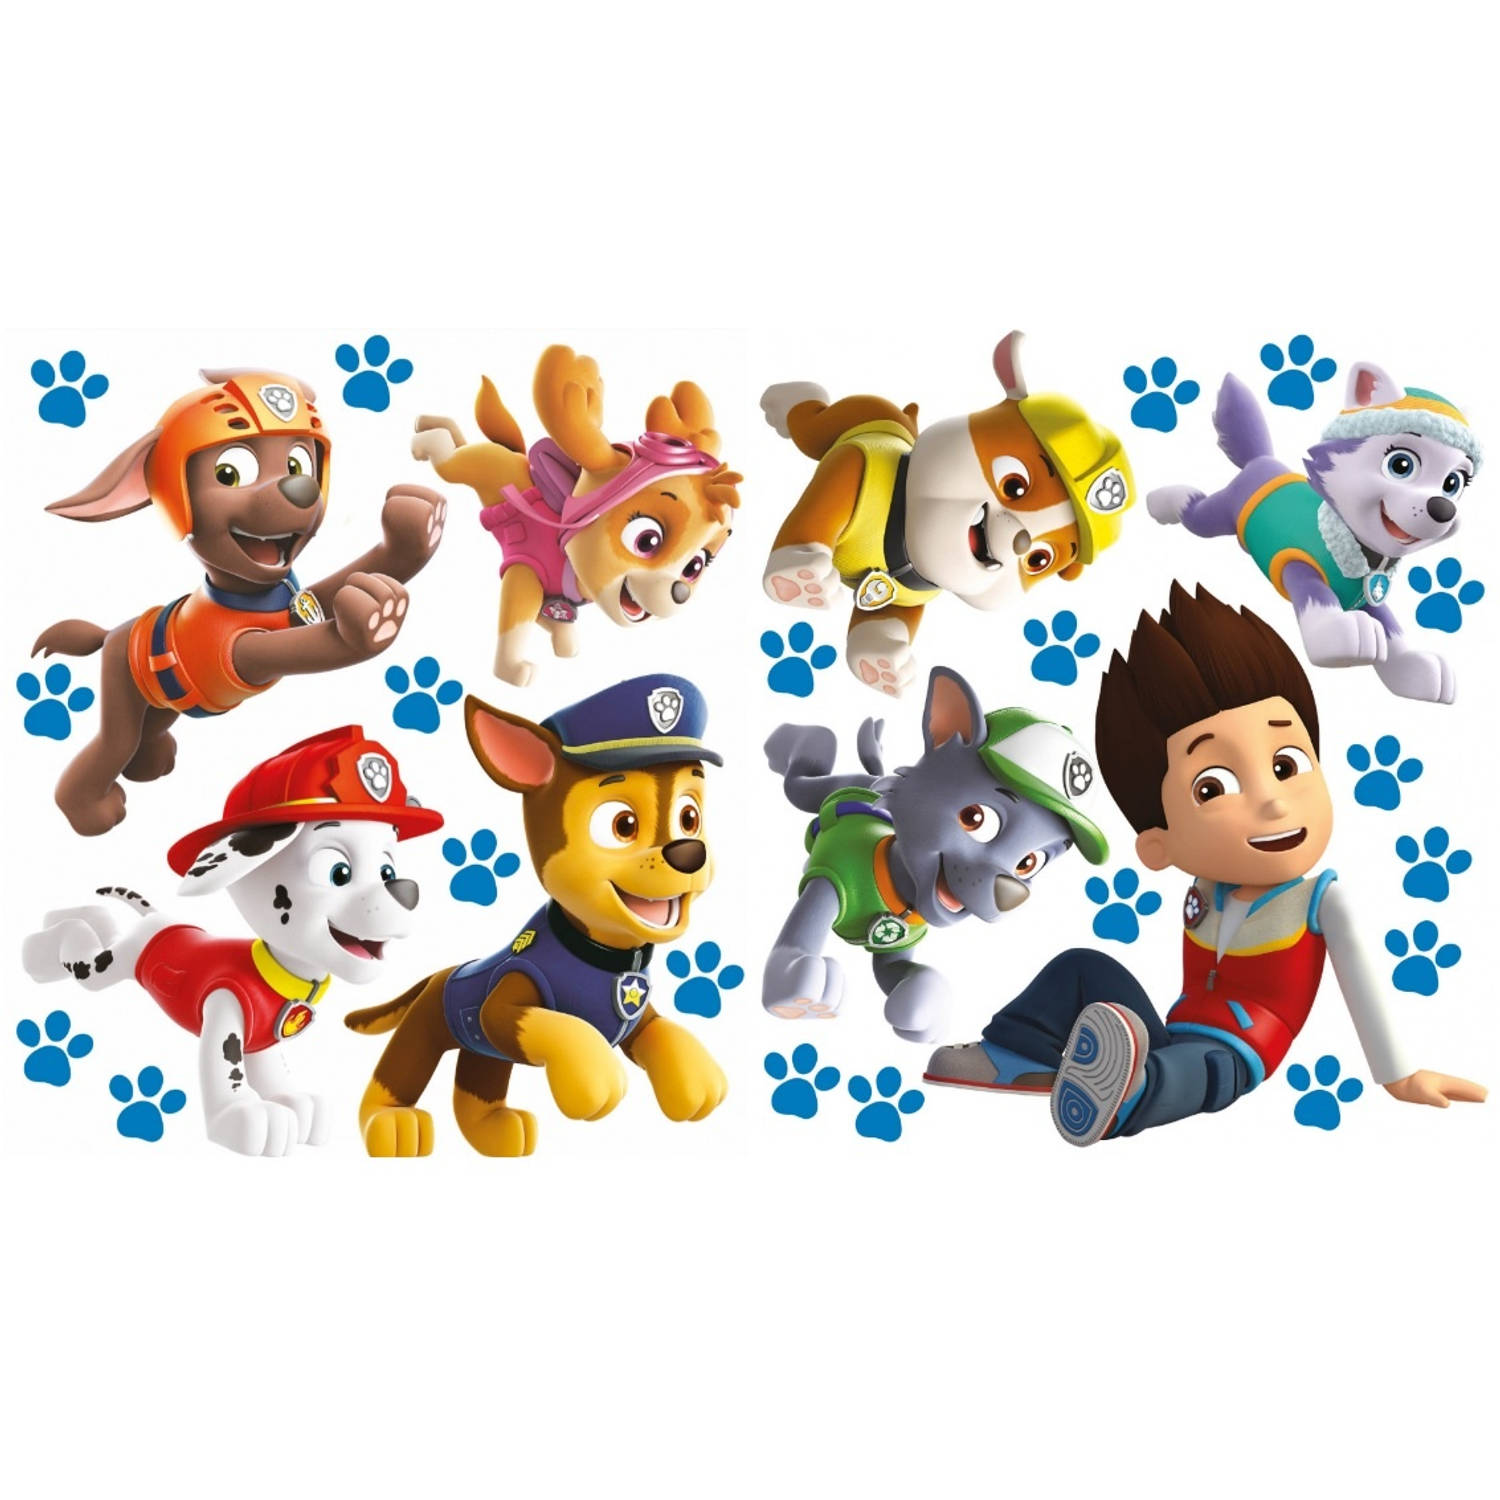 muursticker Paw Patrol run 2 stickervellen